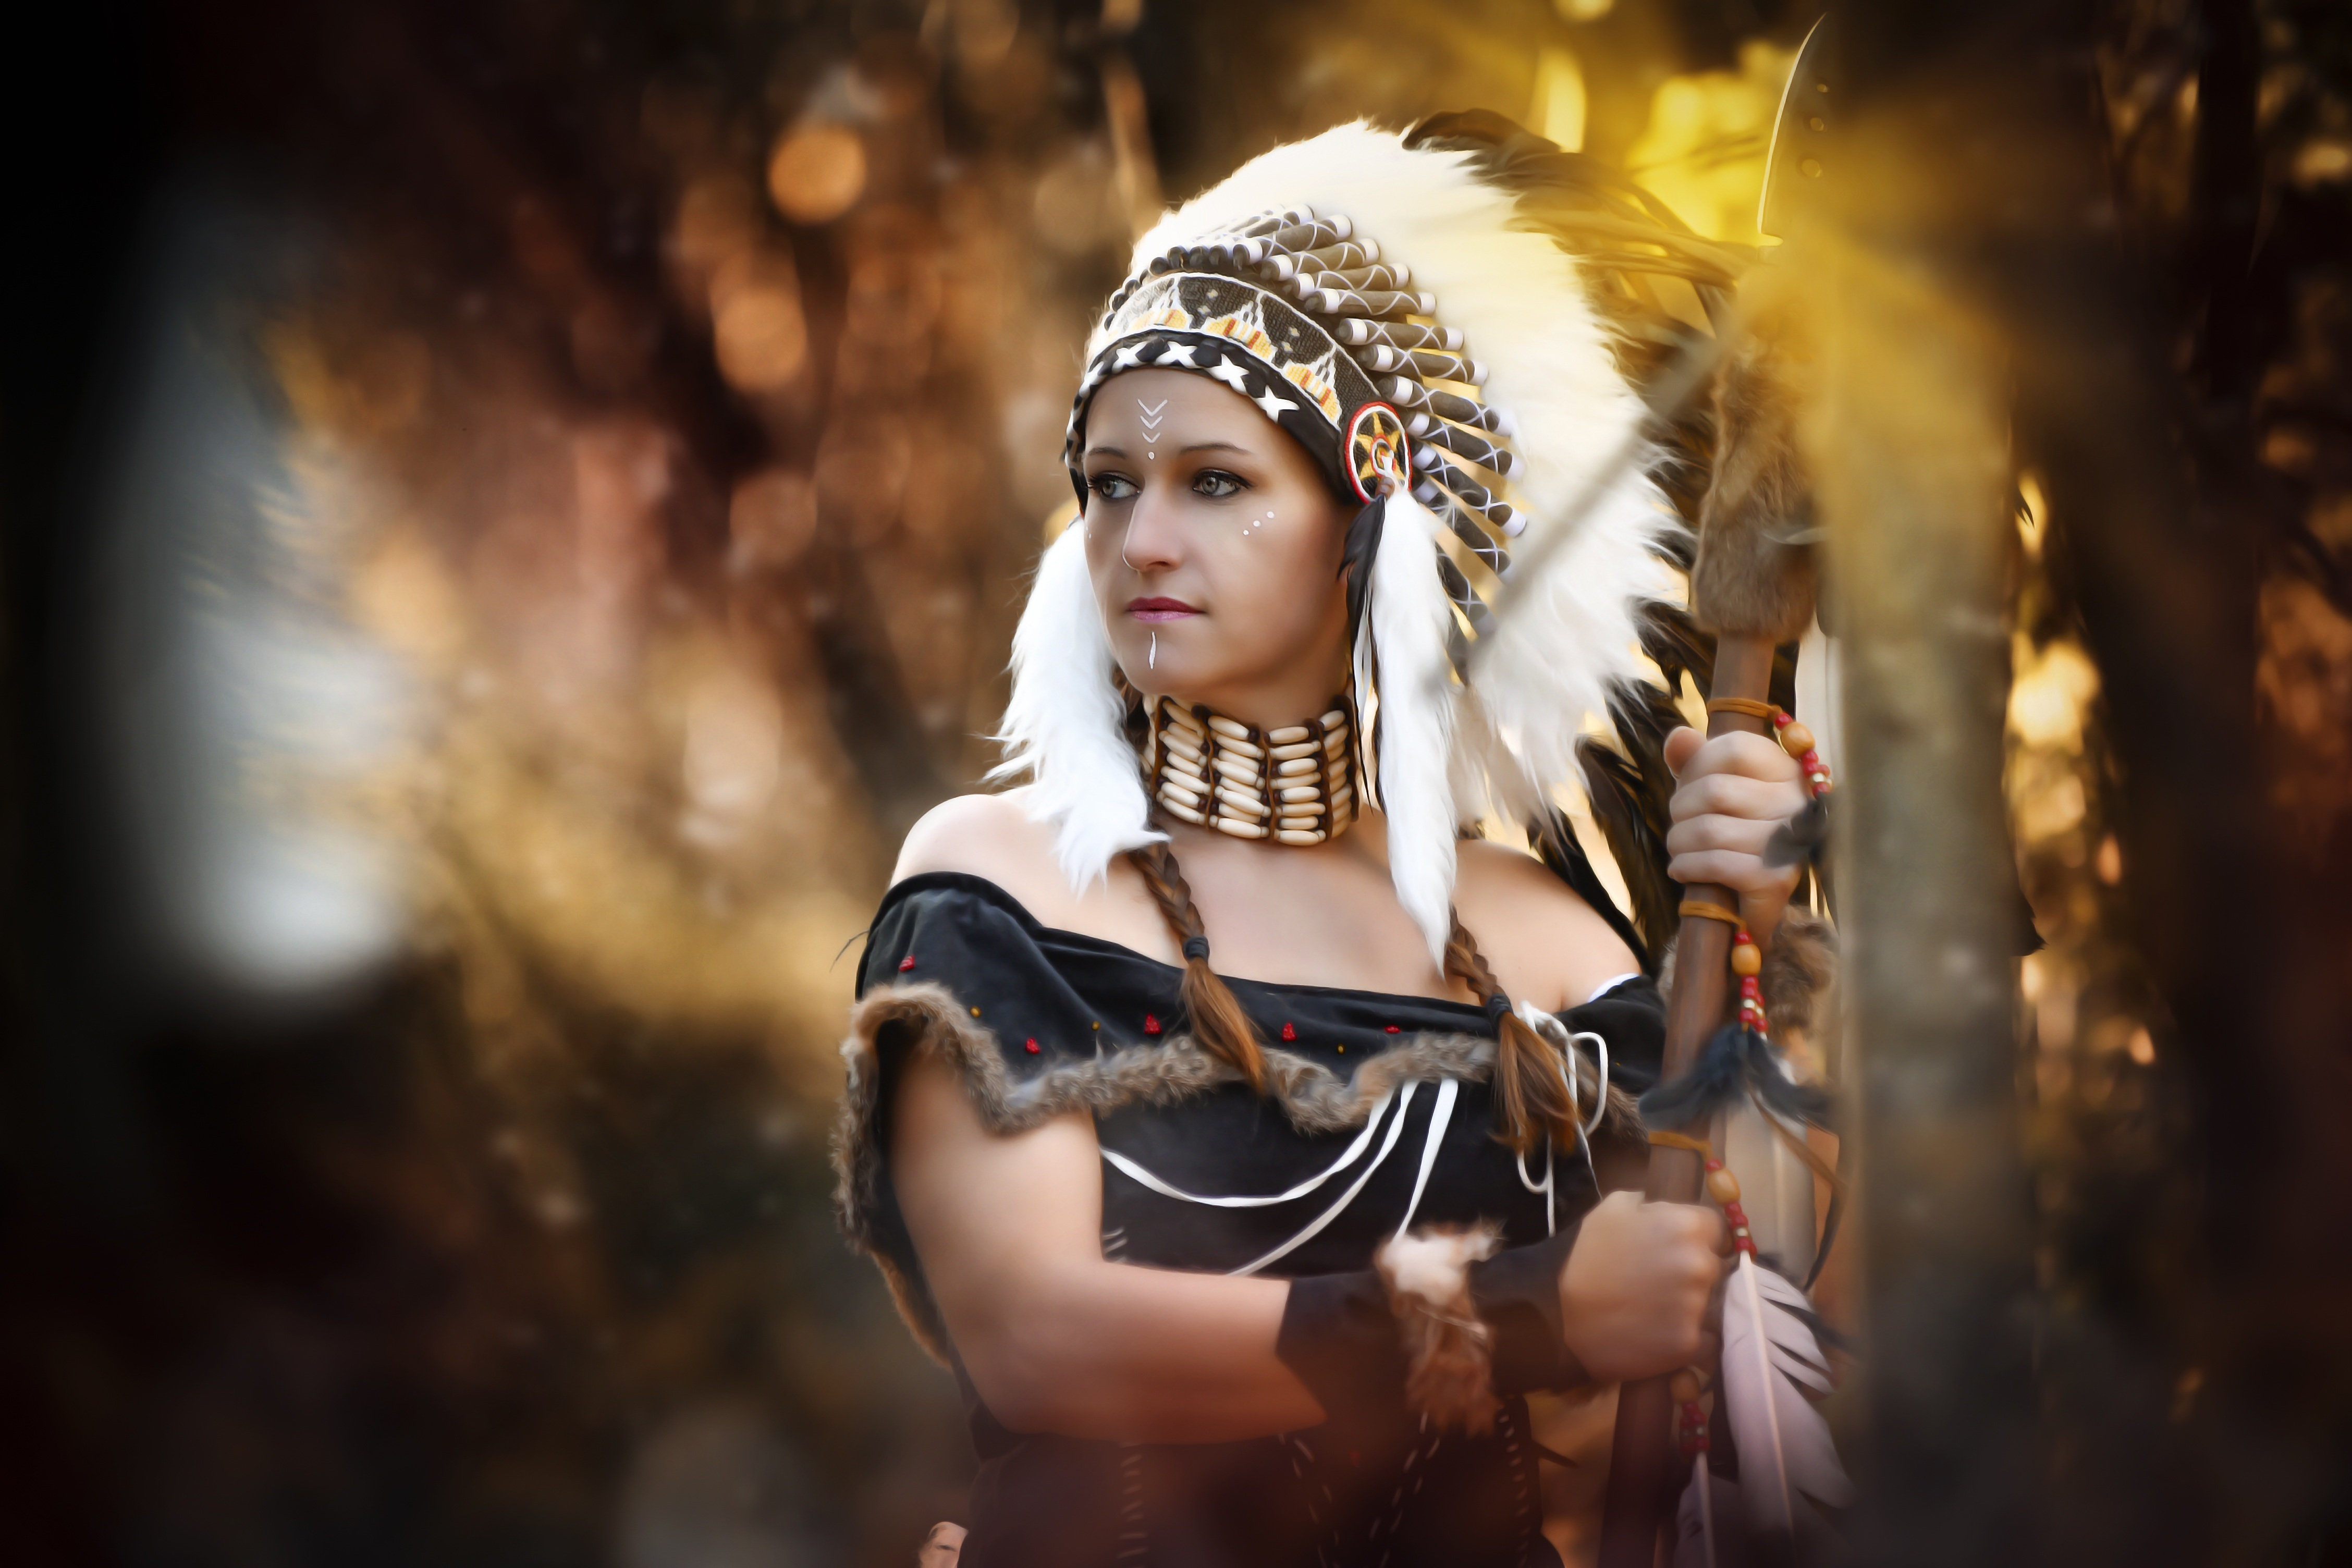 Wallpaper Face Women Cosplay Model Simple Background: Beautiful Woman In A Native American Costume 4k Ultra HD